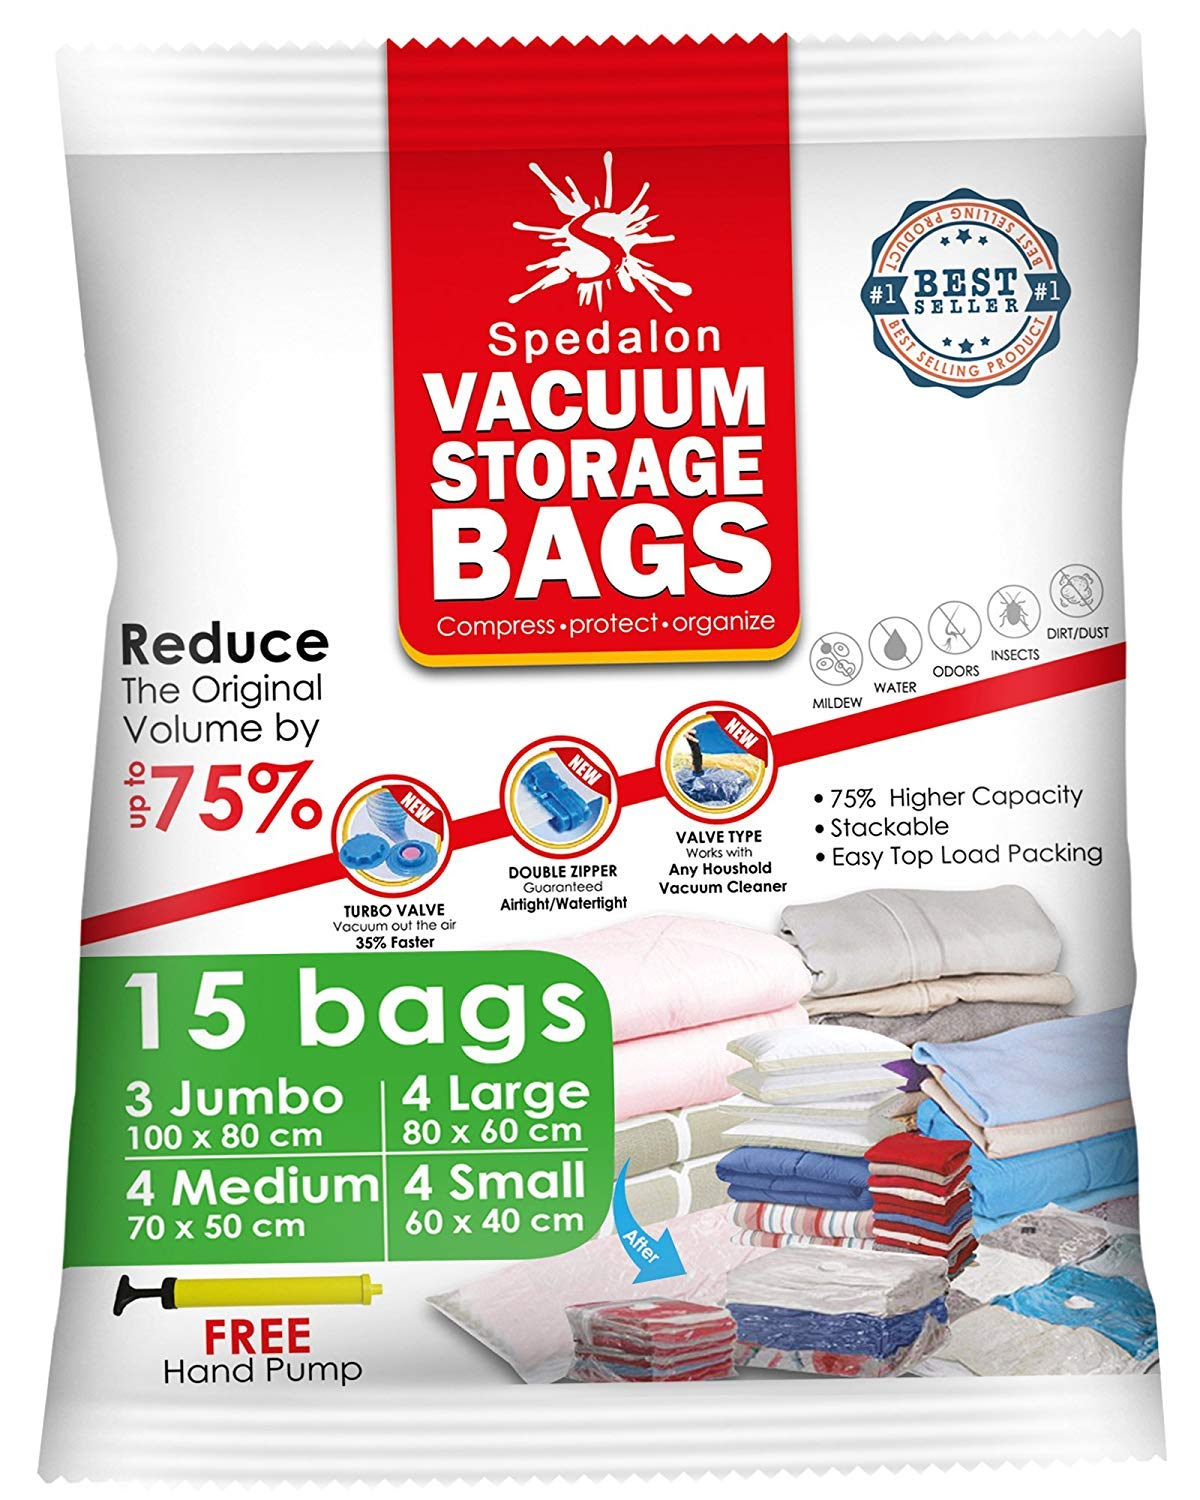 Vacuum Storage Bags - Pack of 15 (3 Jumbo (100x80cm) + 4 Large (80x60) + 4 Medium (70x50) + 4 Small (60x40)) ReUsable space savers with free Hand Pump for travel packing. Best Sealer Bags for Clothes, Duvets, Bedding, Pillows, Blankets, Curtains Spedalon